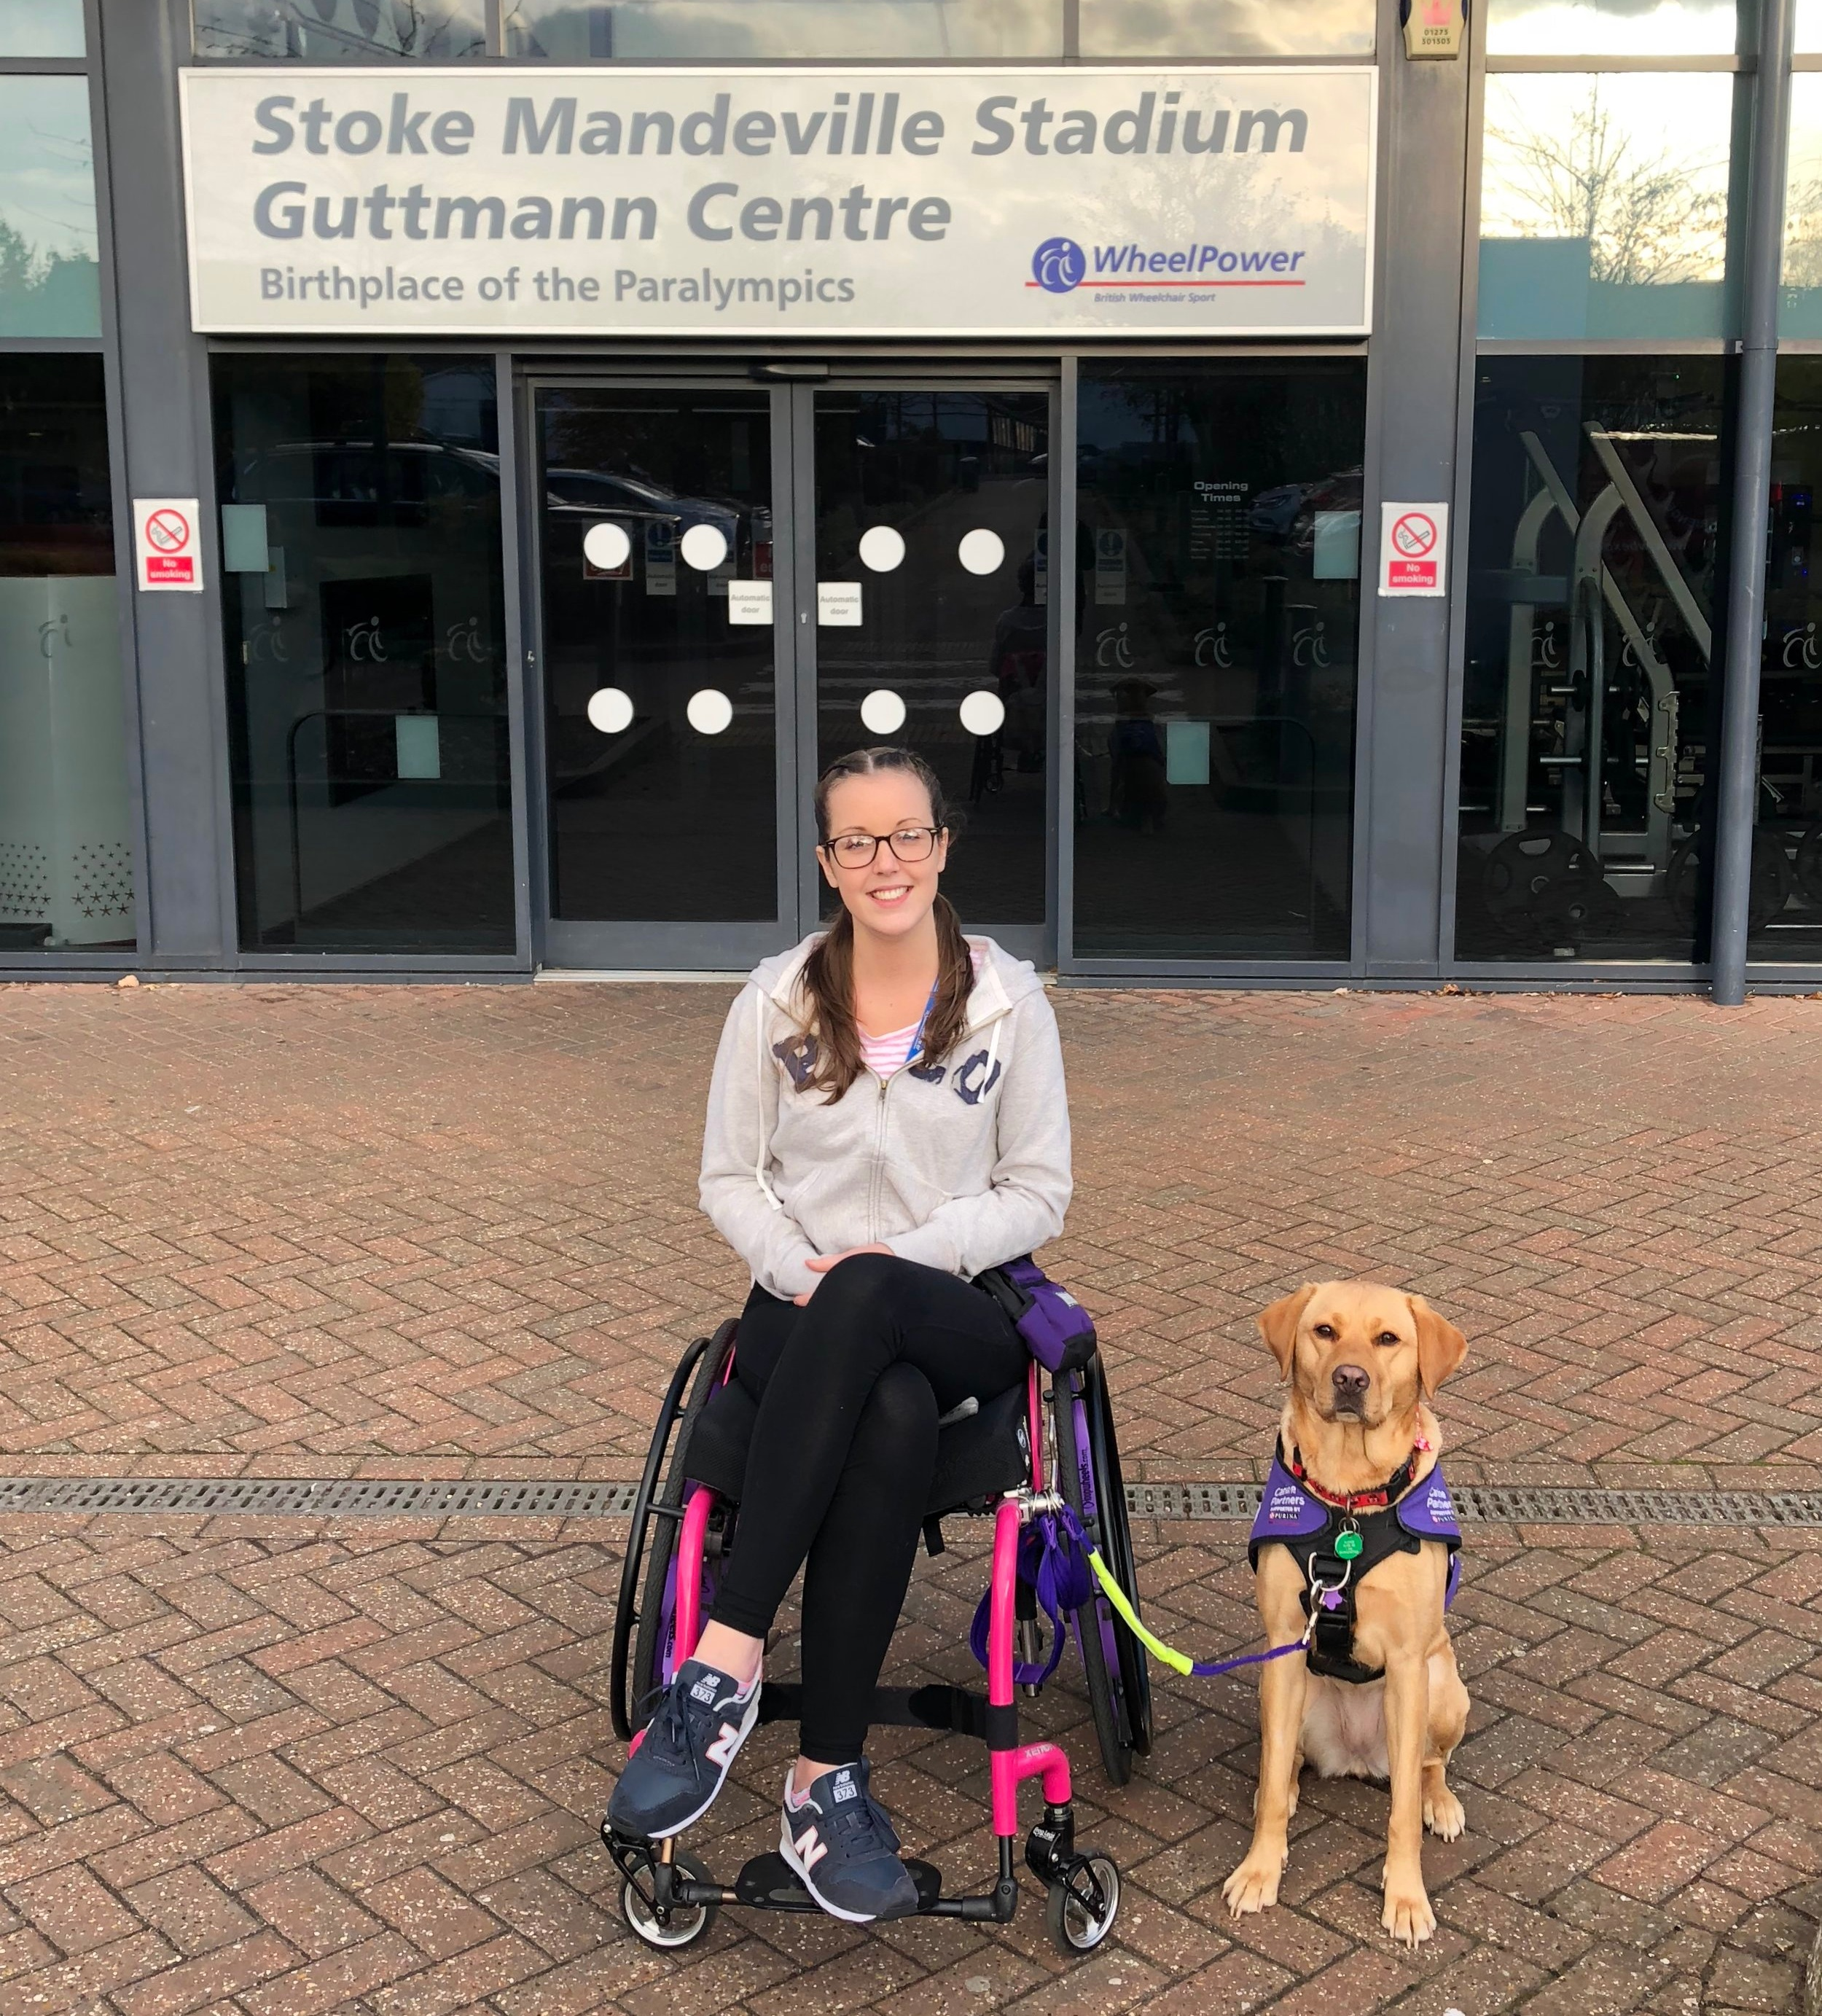 standing outside of stoke mandeville stadium after a fun day!